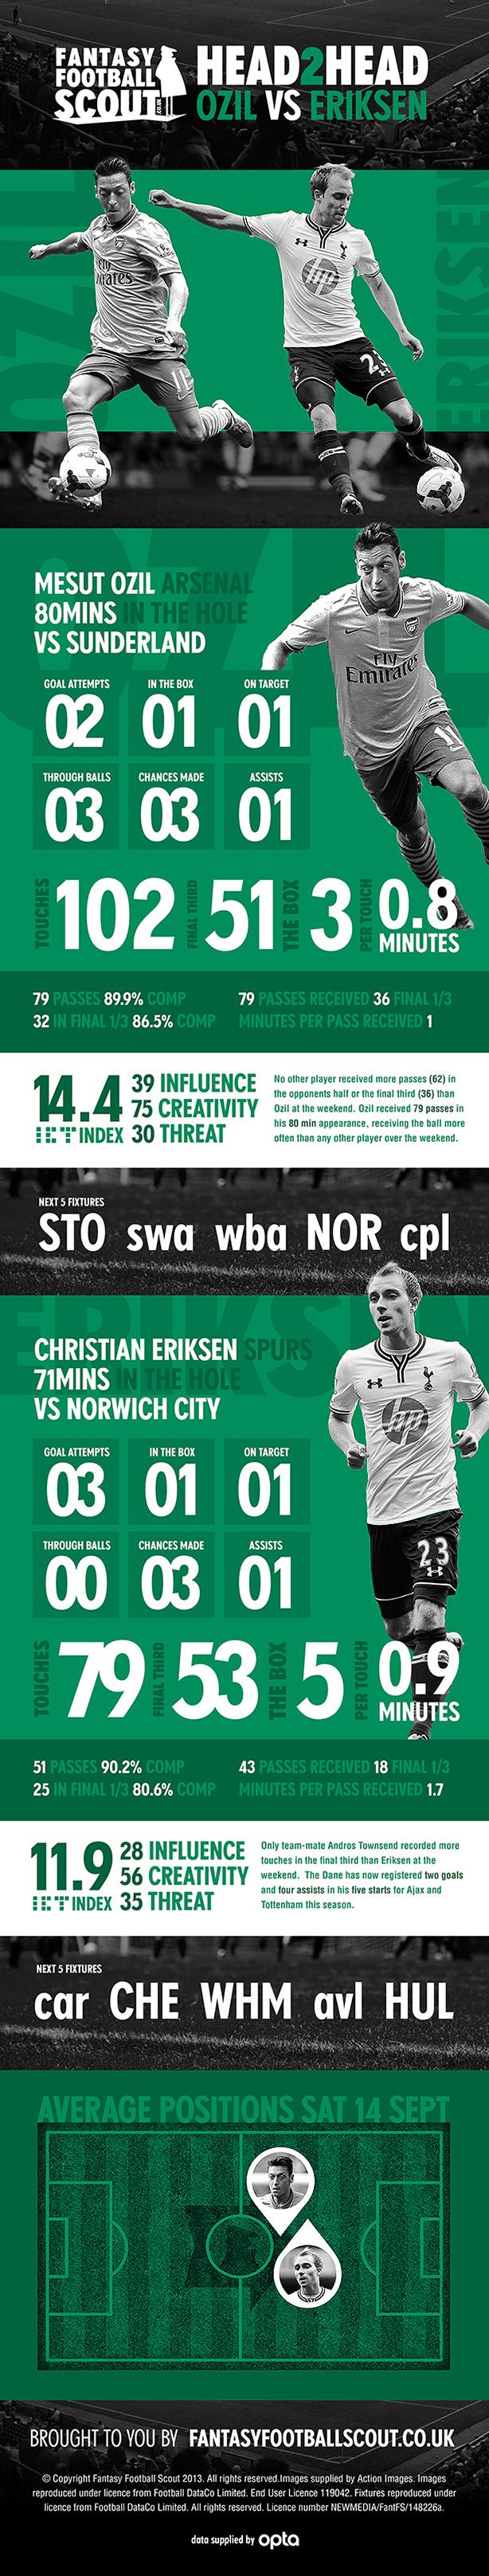 Infographic - Head to Head - Ozil vs Eriksen